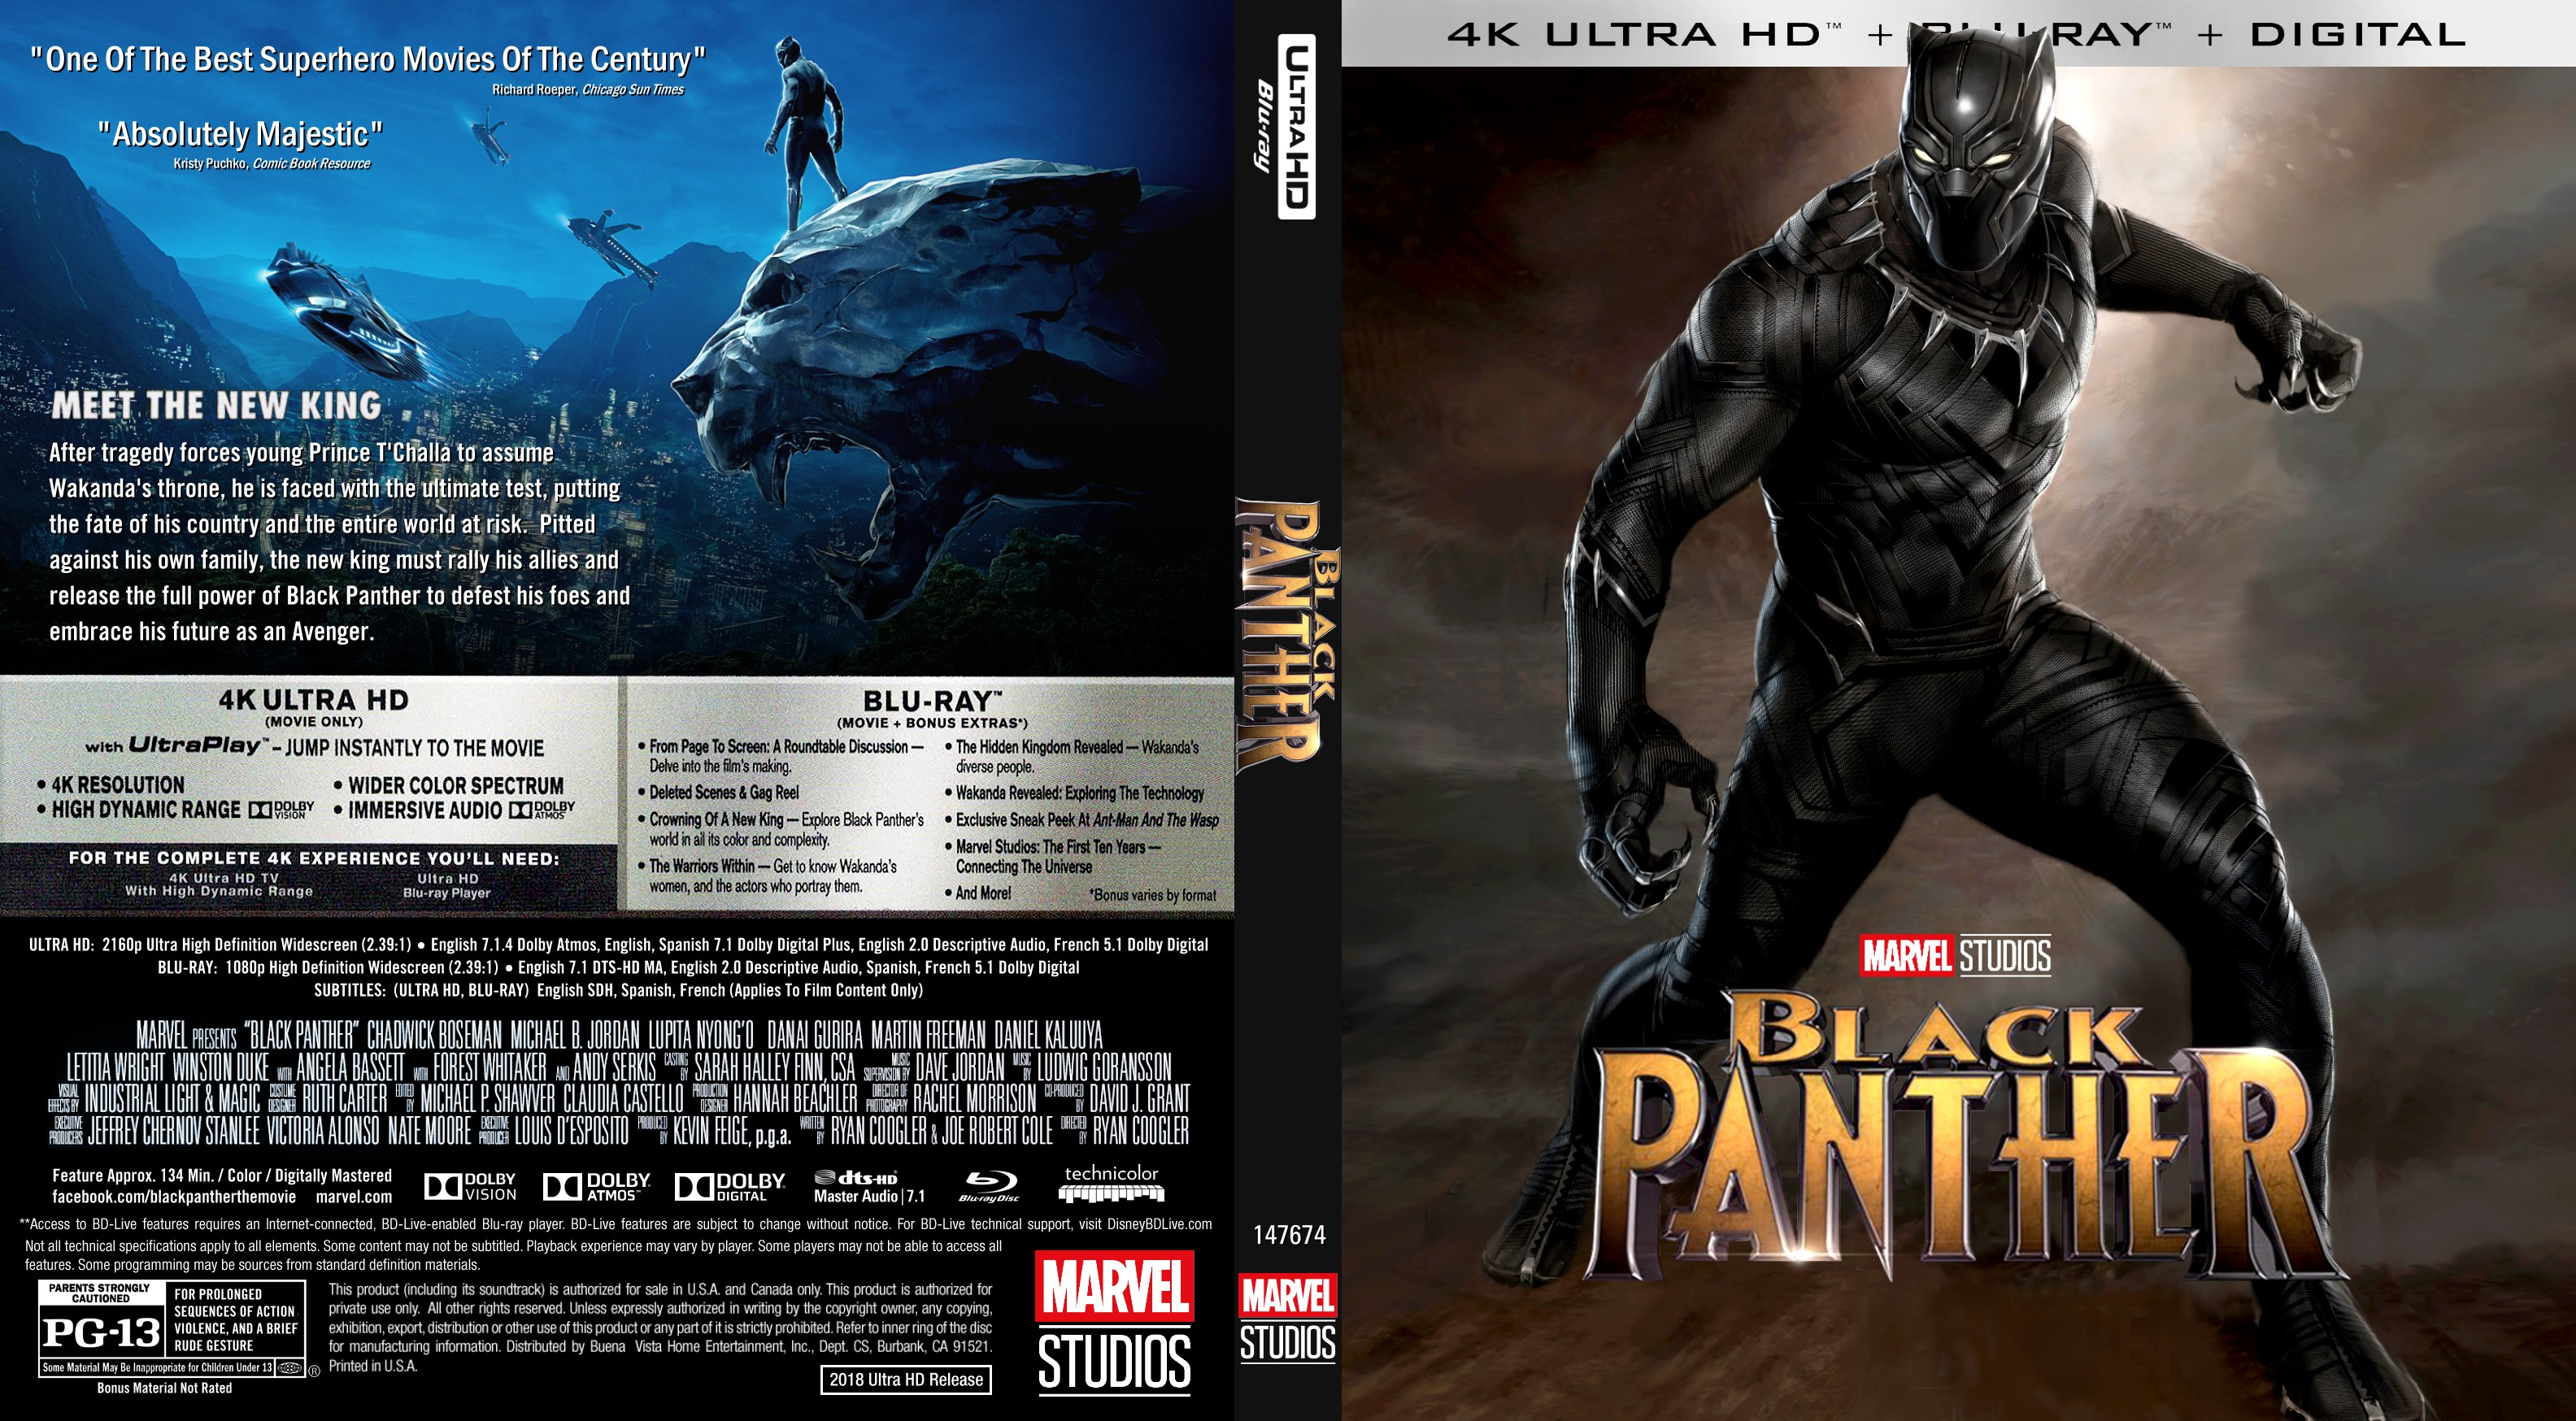 Black panther blu-ray release dates